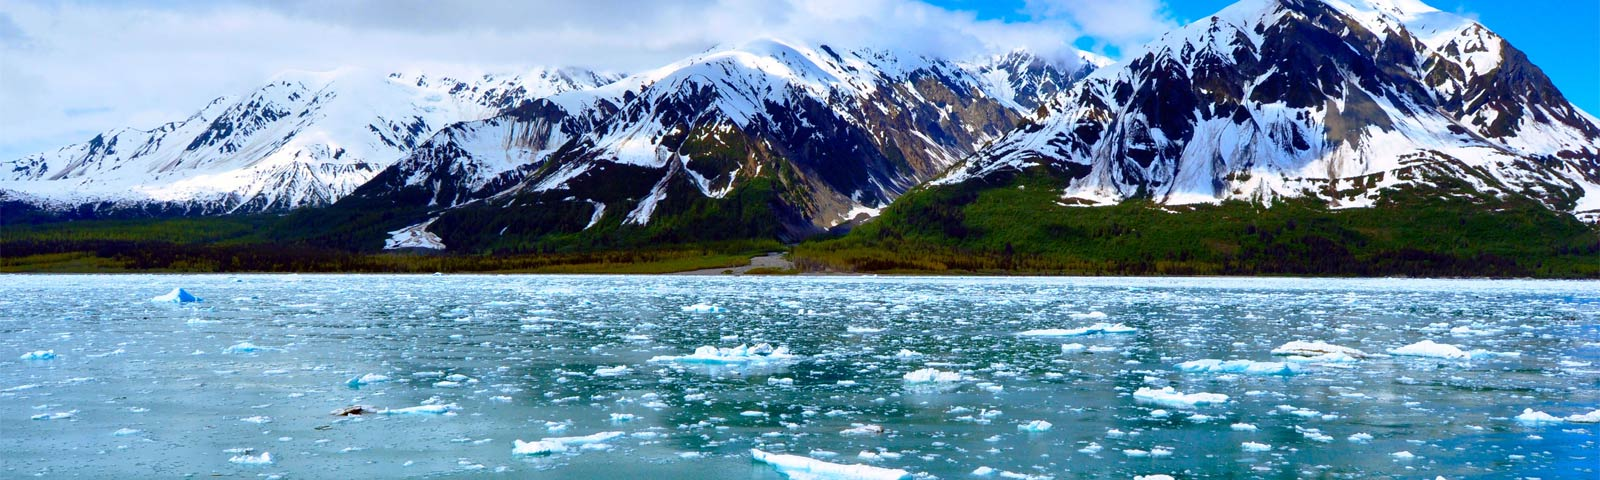 An Adventure in Alaska and Canada with Regent Seven Seas and Fairmont Hotels